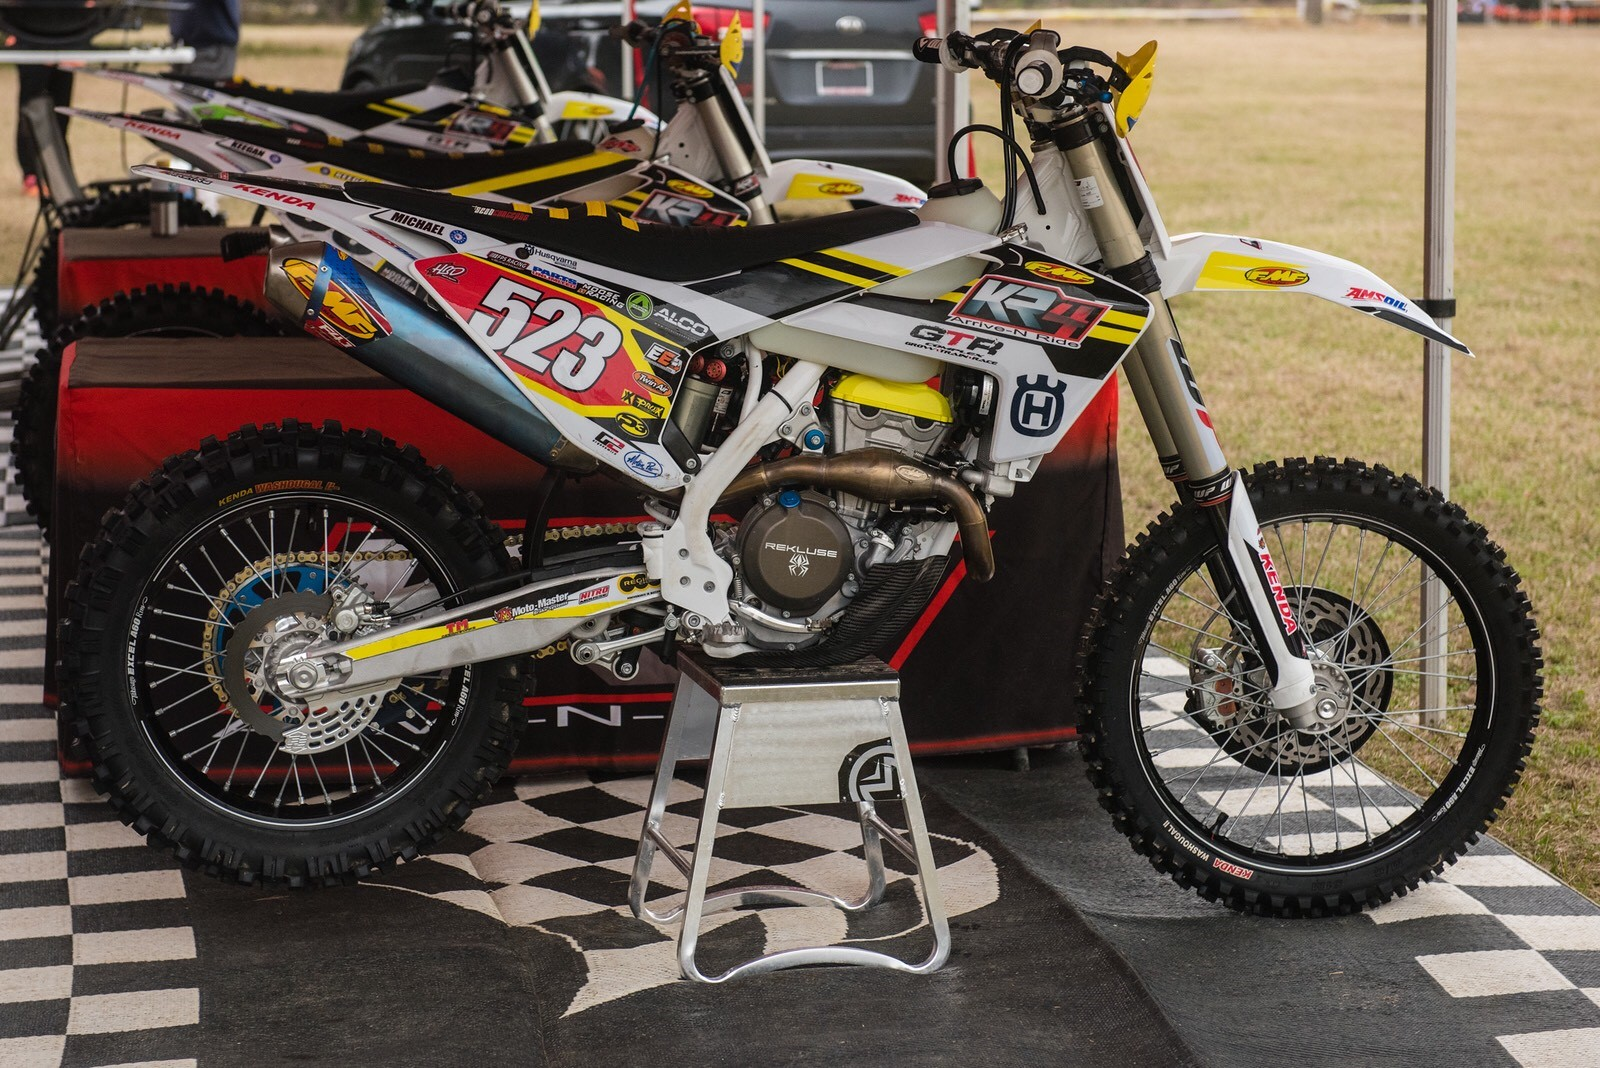 Building a Bulletproof Off-Road Race Bike with KR4 Performance